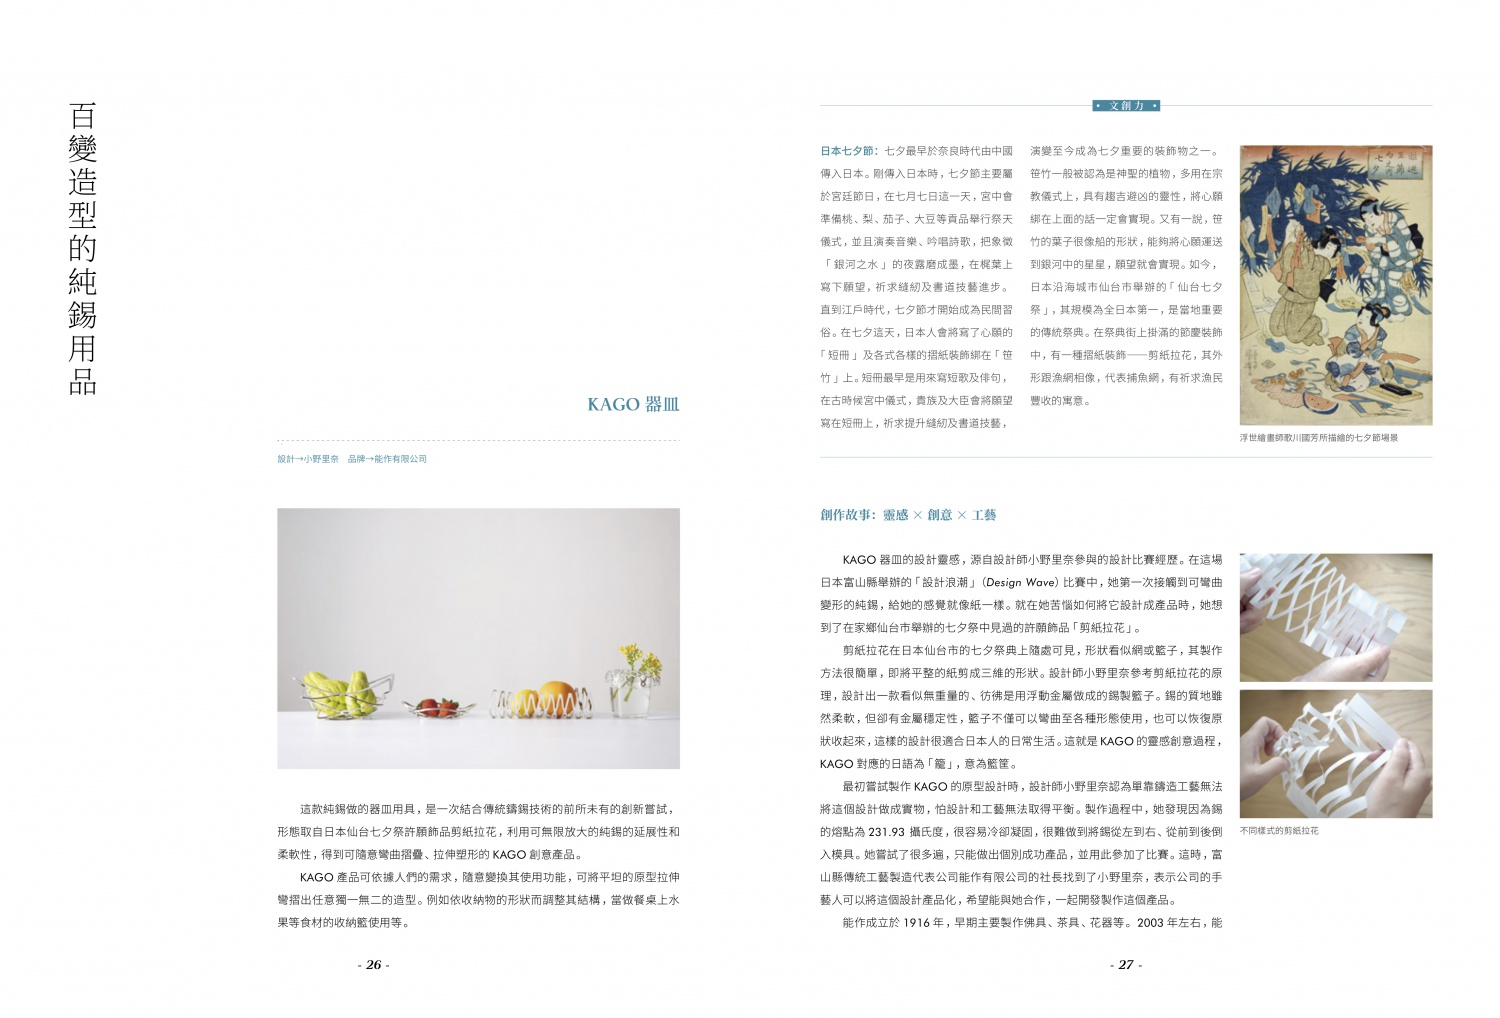 STORIES OF CULTURAL AND CREATIVE PRODUCTS - Analyses for Design of Cultural and Creative Products